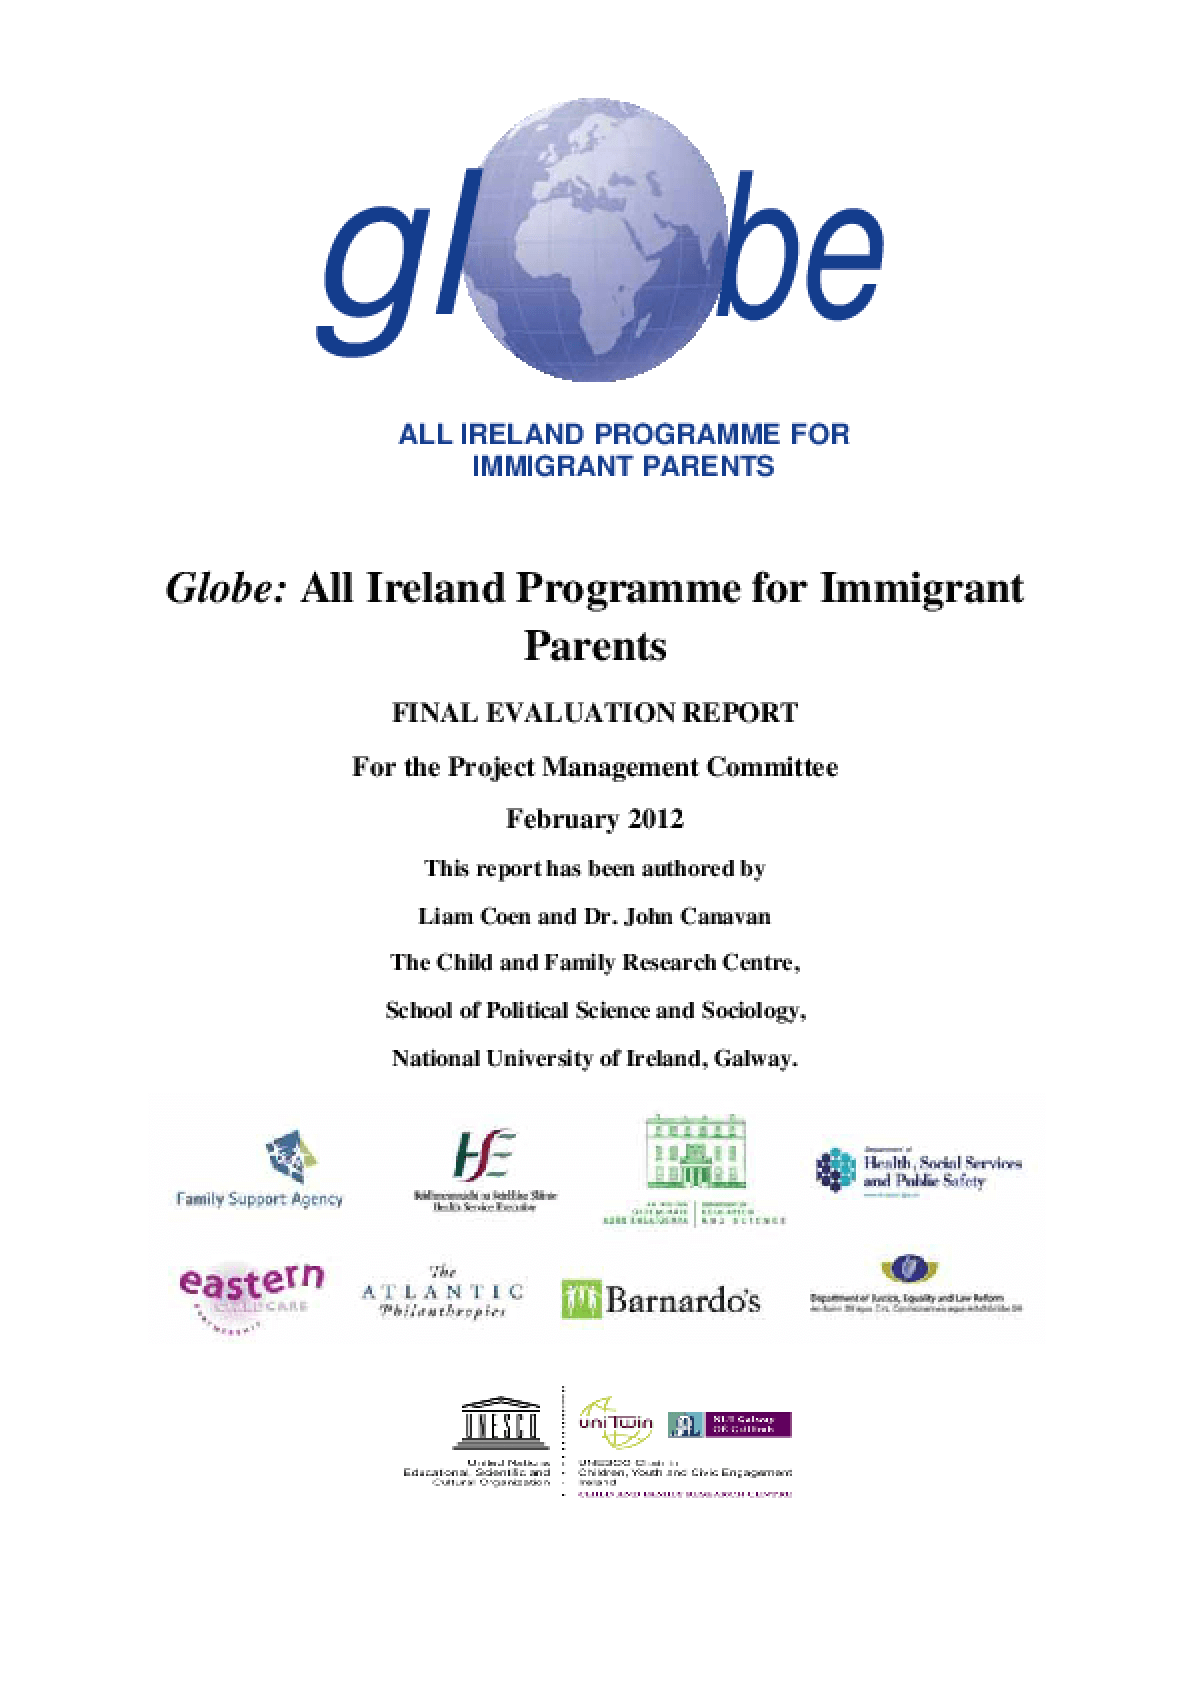 Globe: All Ireland Programme for Immigrant Parents: Final Evaluation Report